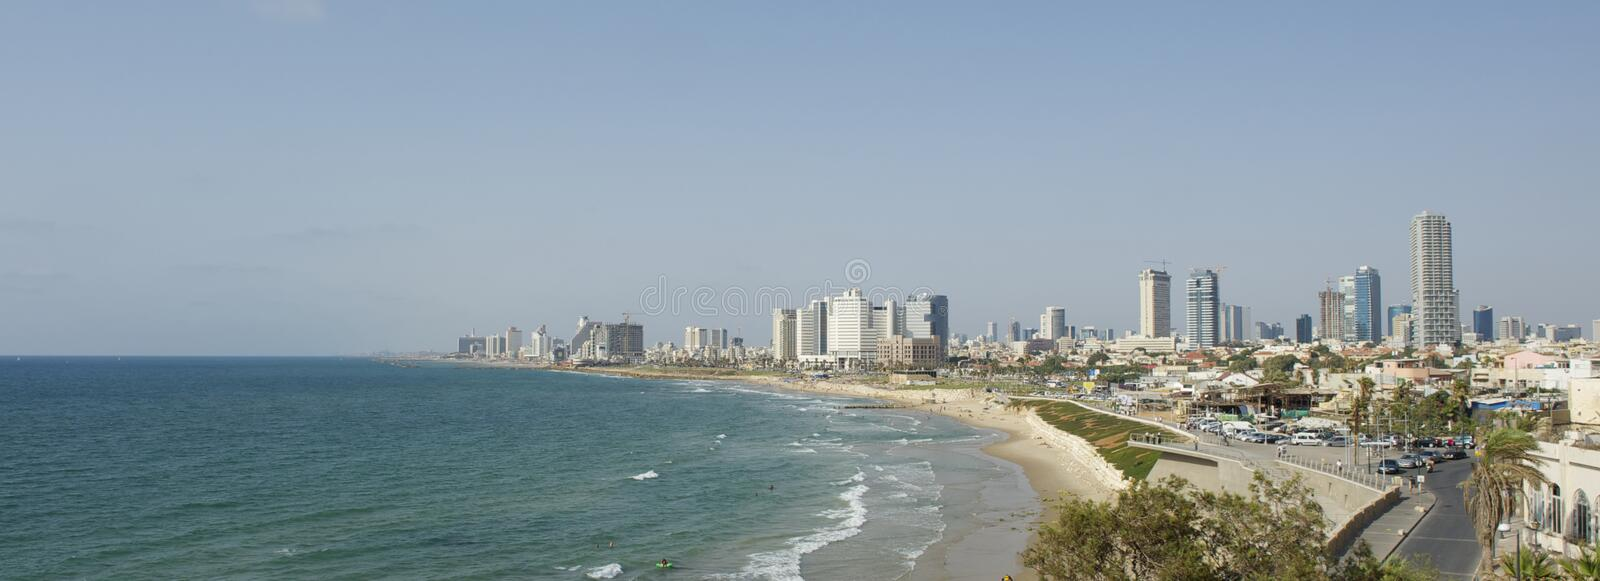 Download Tel Aviv stock image. Image of lifestyles, built, construction - 15389579